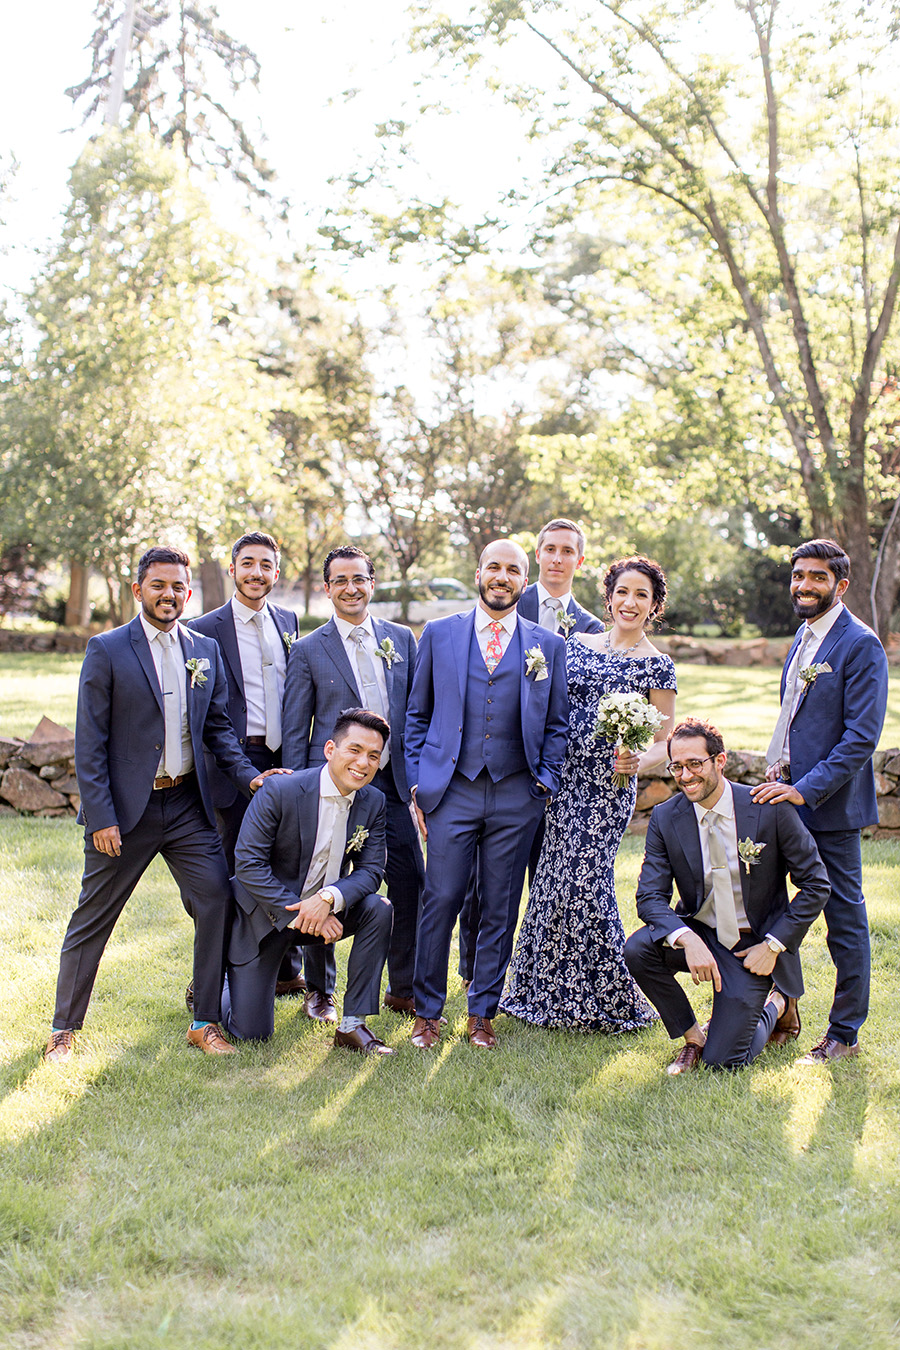 crazy groomsmen pose for a picture